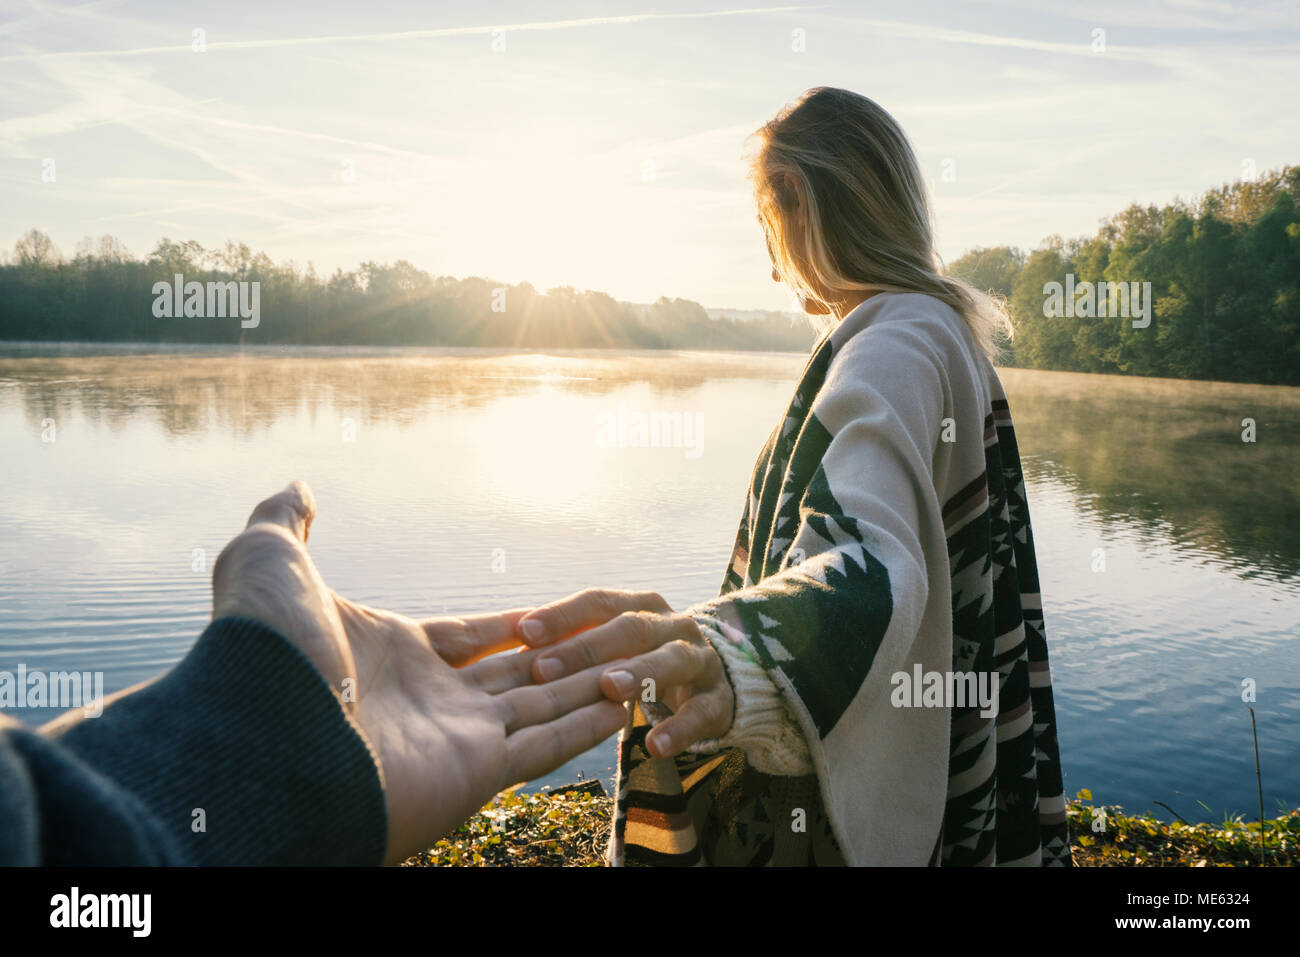 Follow me to concept, Young woman leading boyfriend to the lakeshore at sunrise, holding hands, People travel couple beginning. Shot in France, Europe Stock Photo